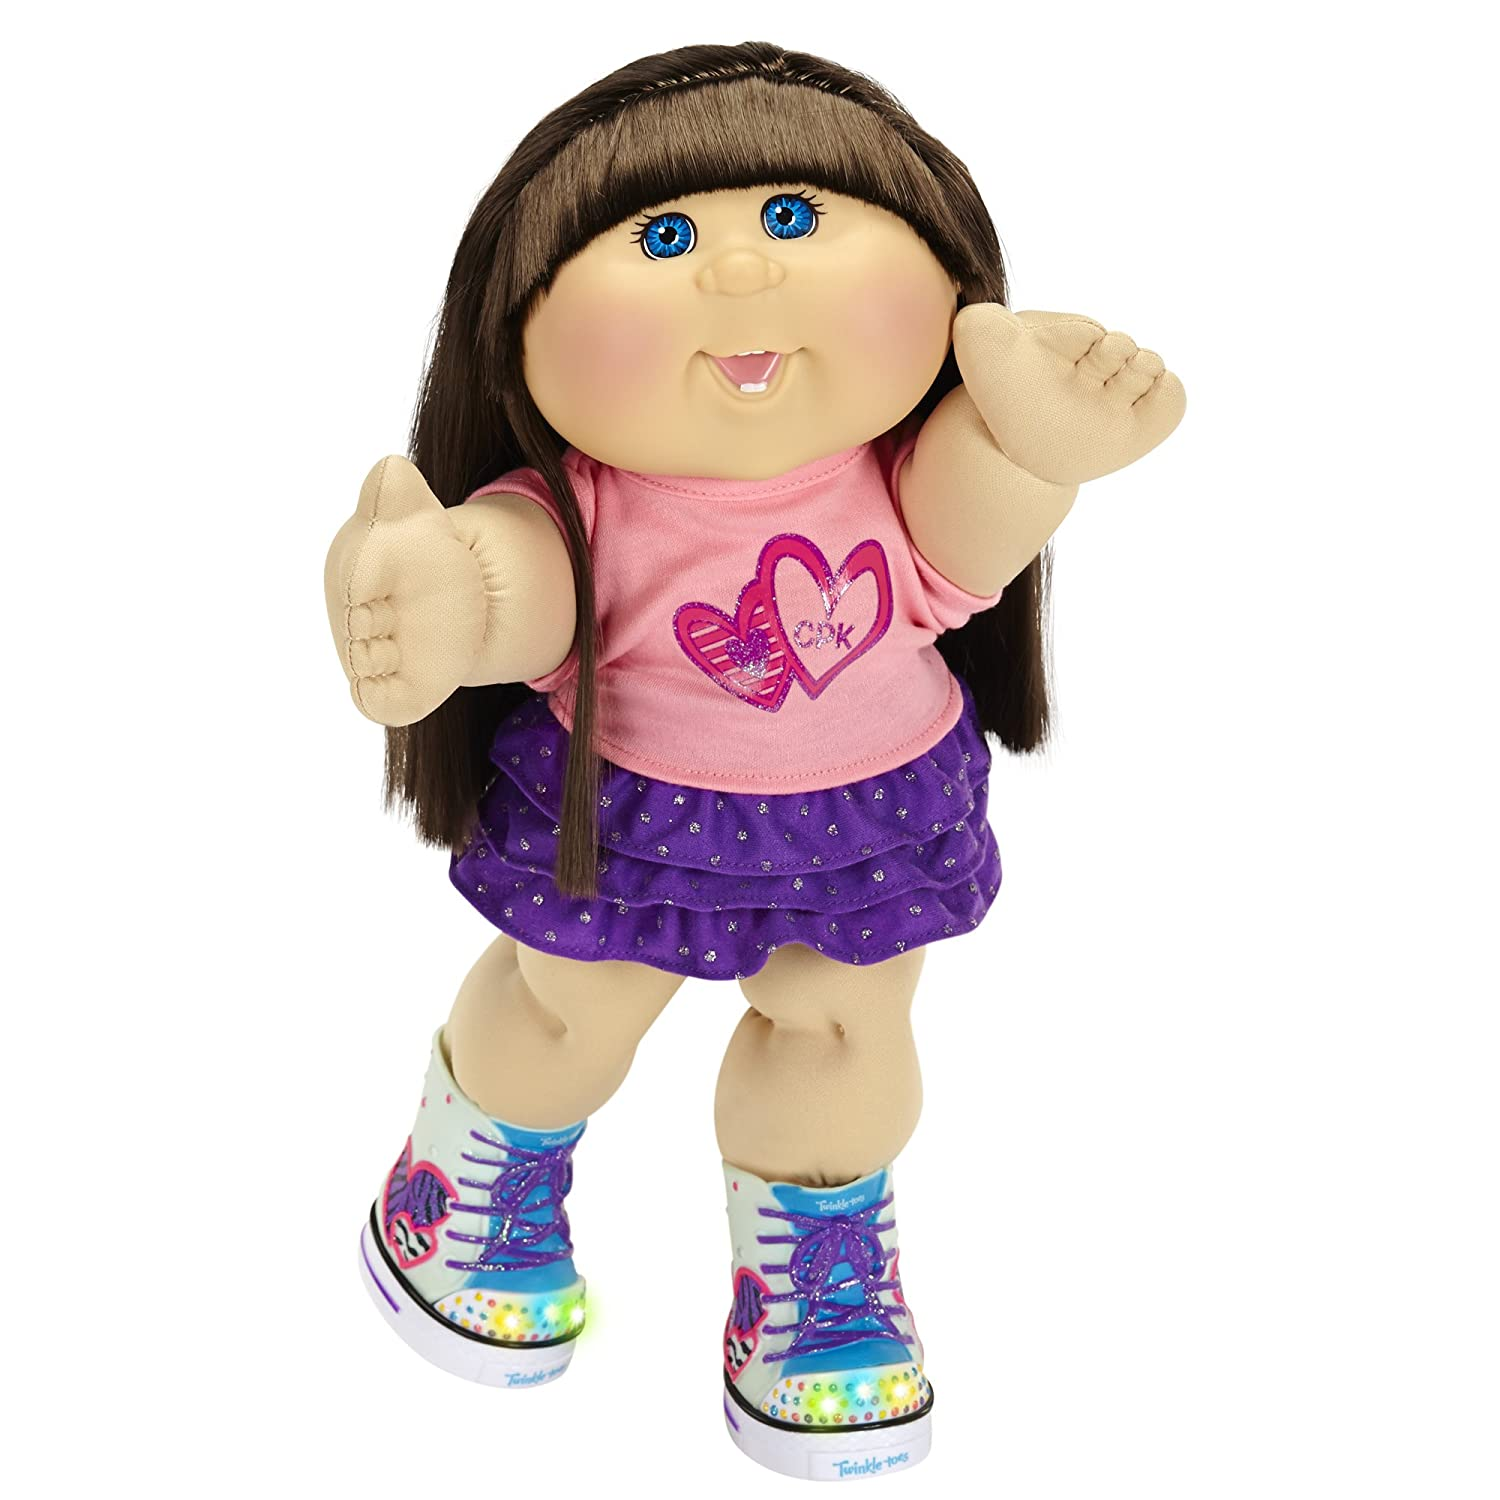 Cabbage Patch Kids Caucasian Girl Brunette Hair Blue Amazon